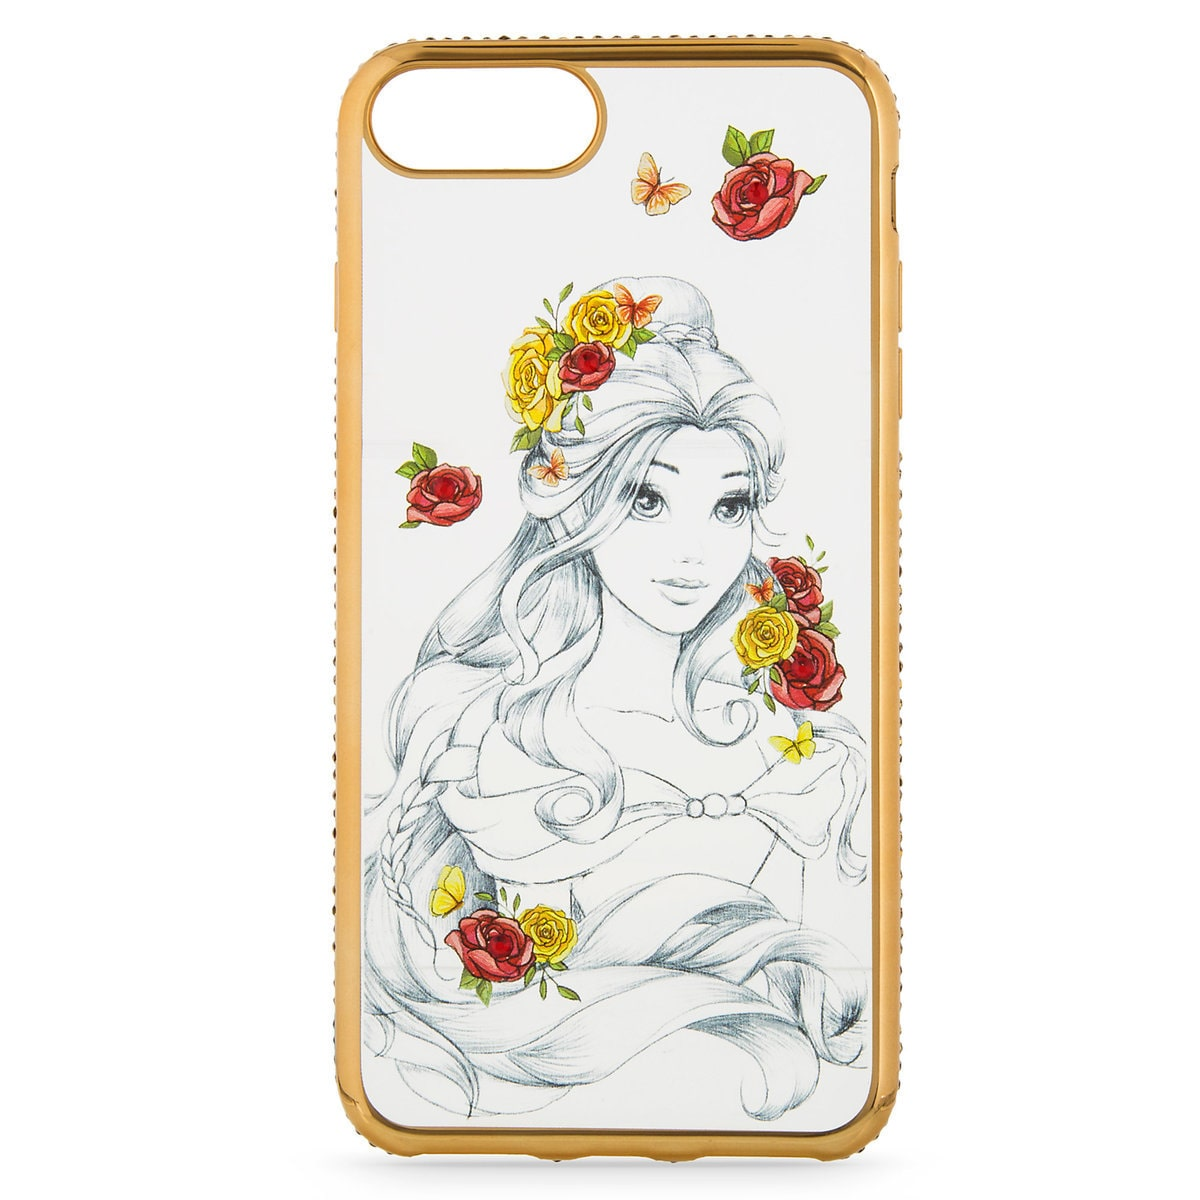 sketch iphone 7 case